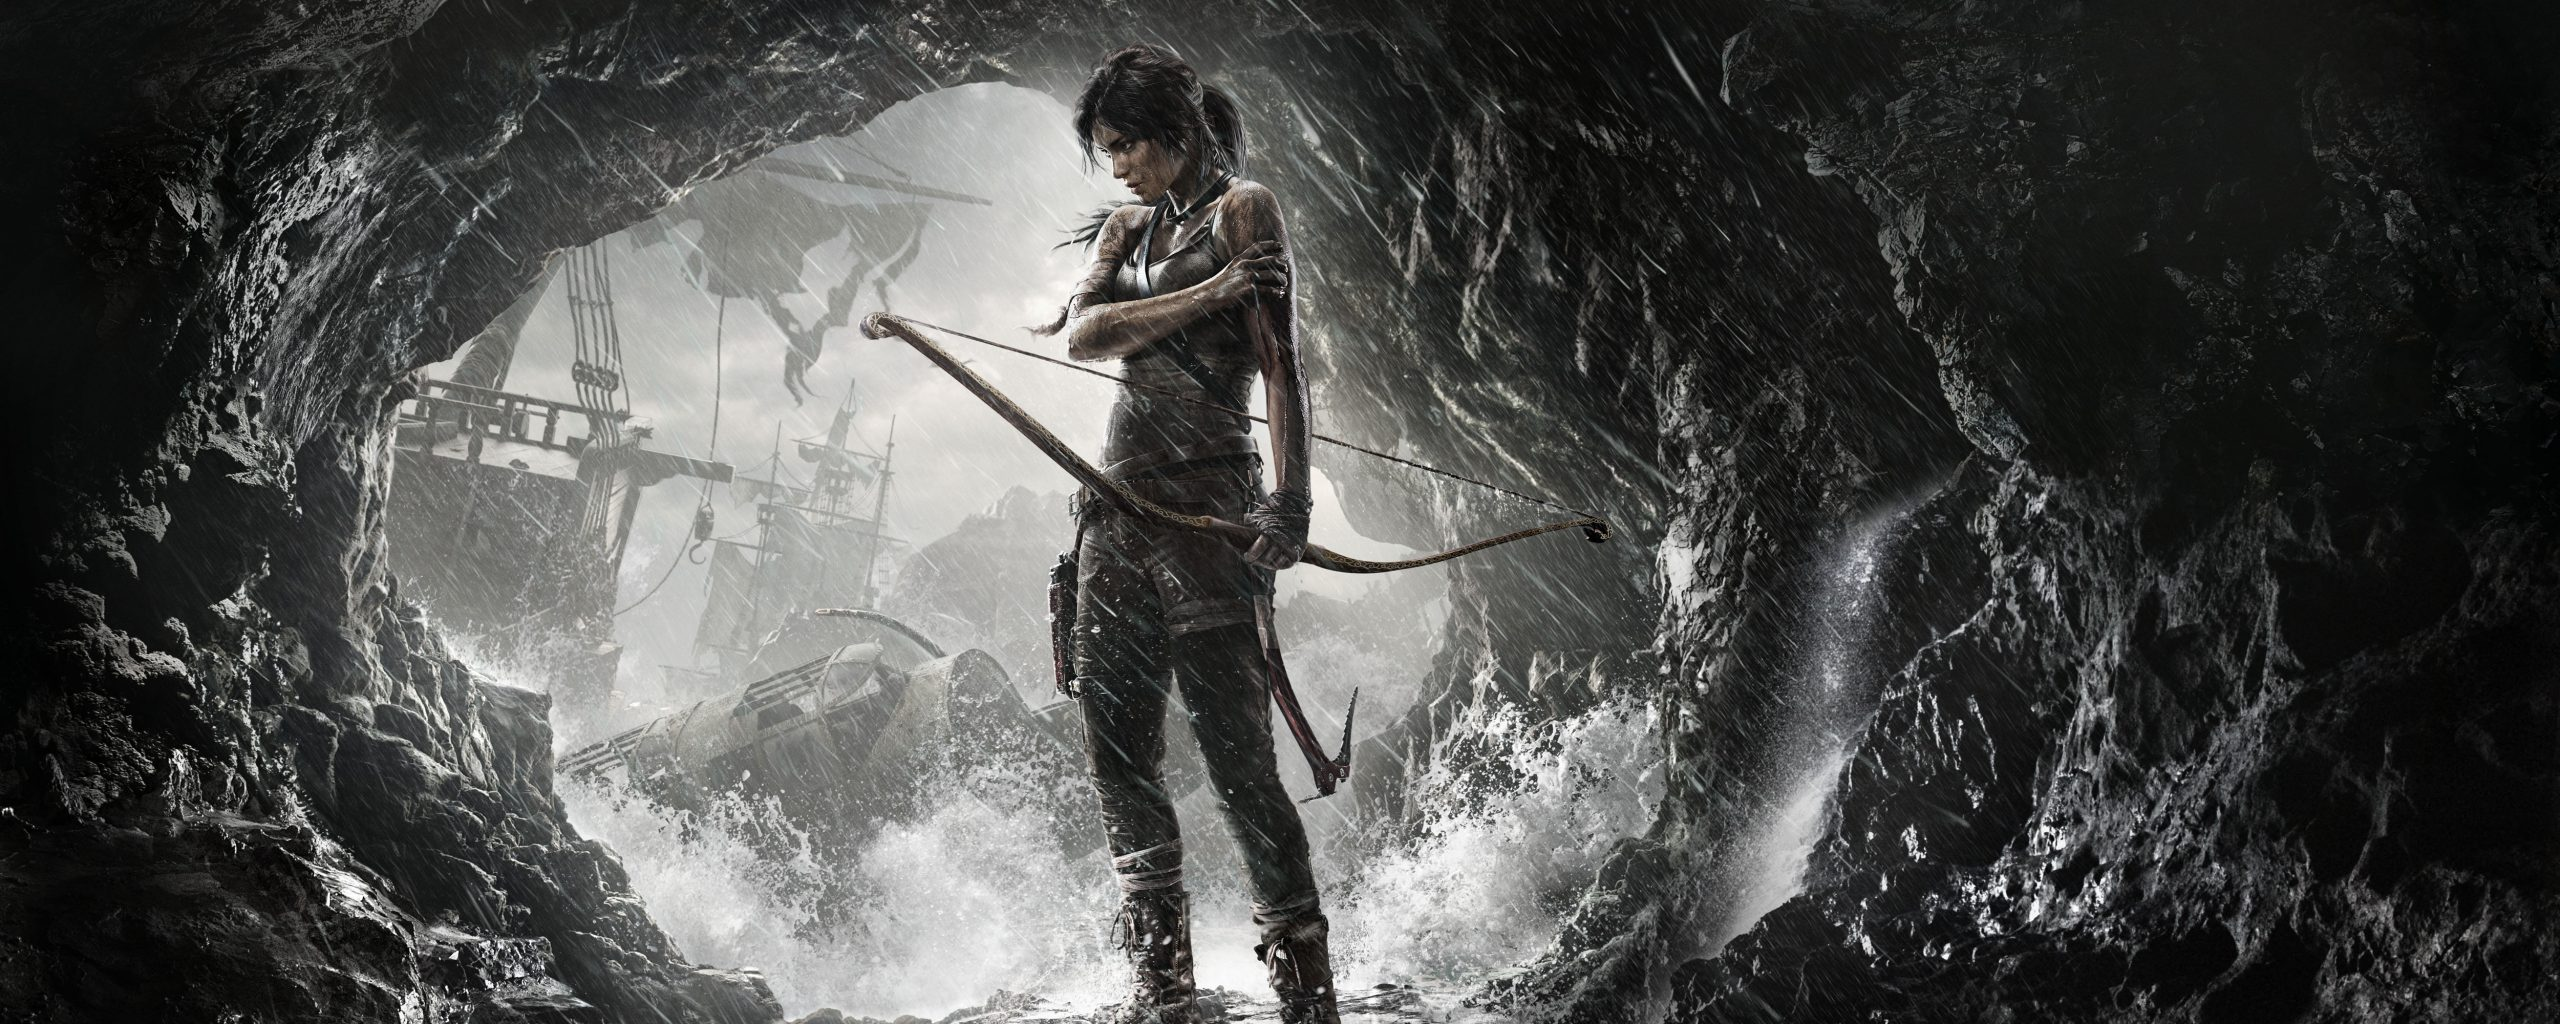 Shadow of the Tomb Raider Game 4K Wallpaper - Best Wallpapers